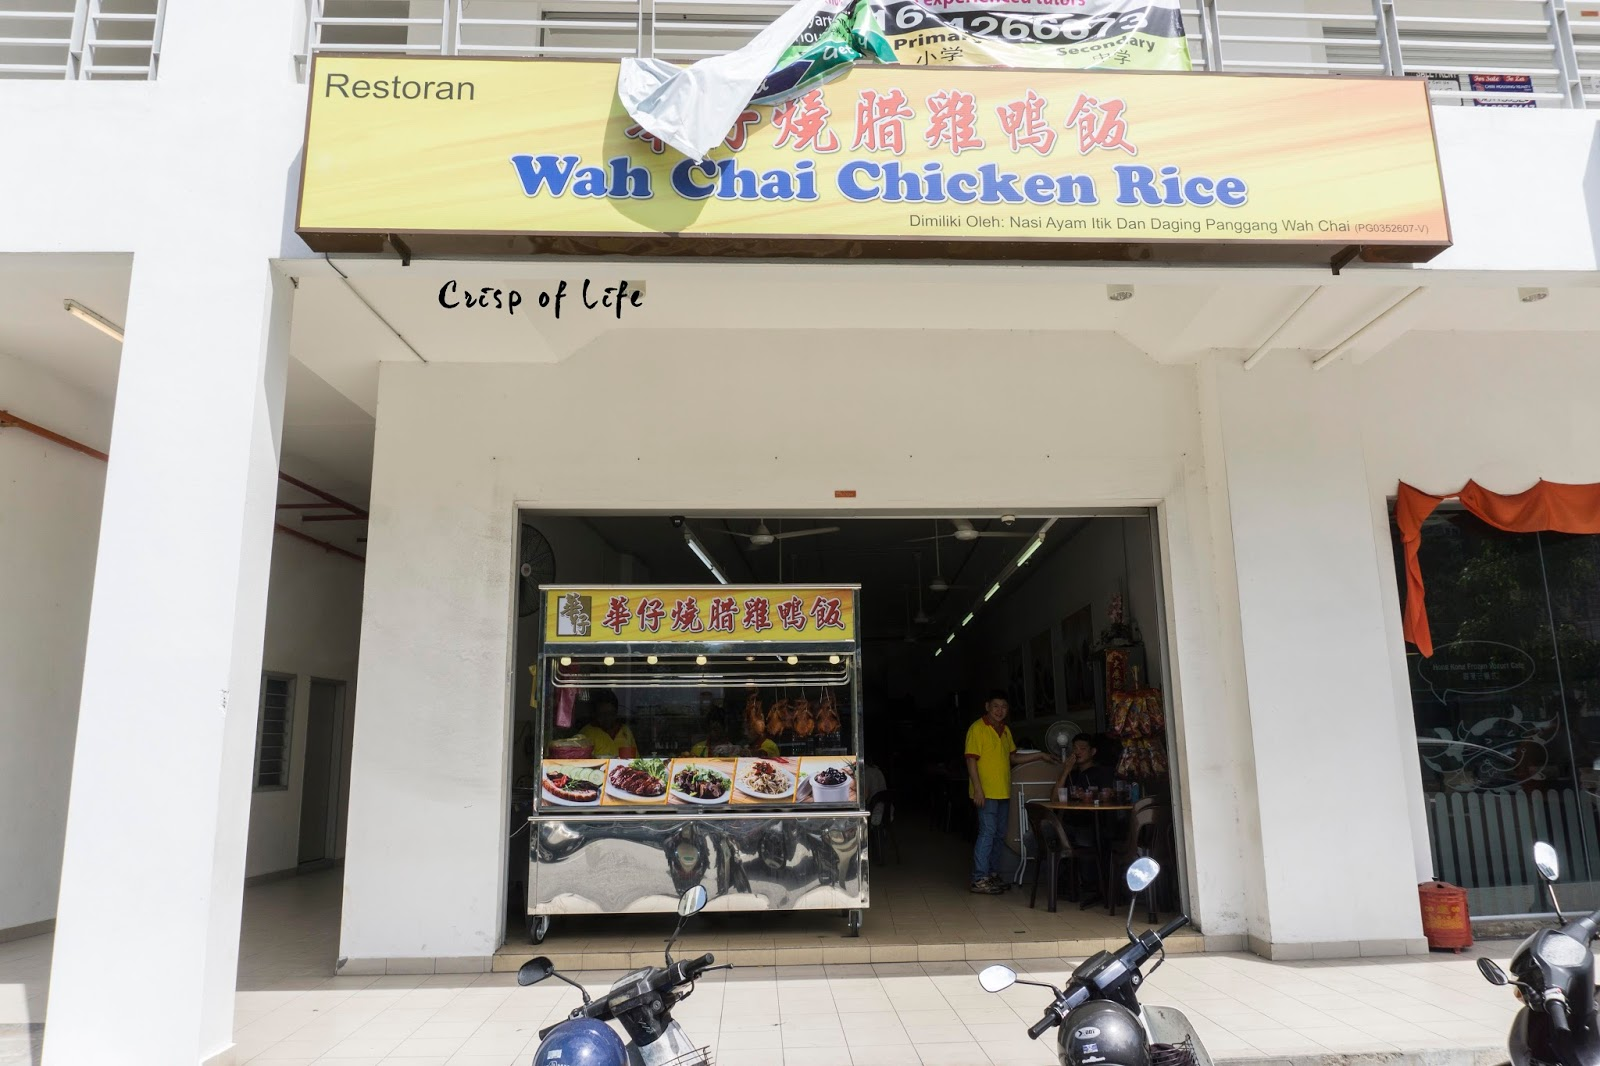 Wah Chai Chicken Rice 華仔燒臘雞鴨飯 @ Golden Triangle, Relau, Penang